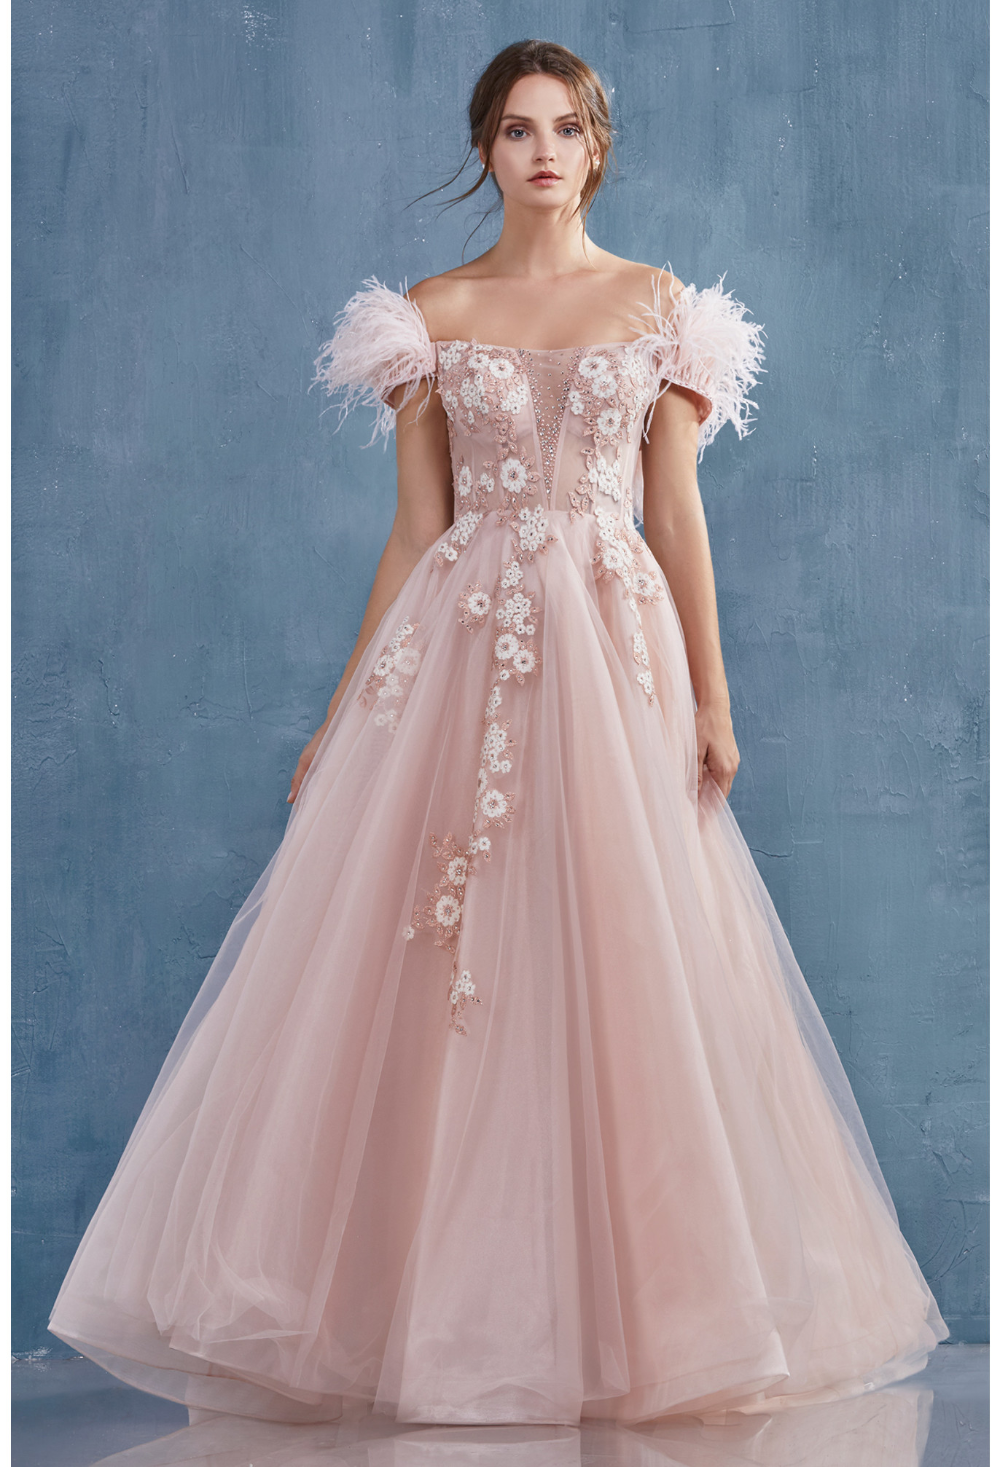 Pin By Jen On Once Upon A Time Ball Gowns Gowns Dresses [ 1467 x 1000 Pixel ]